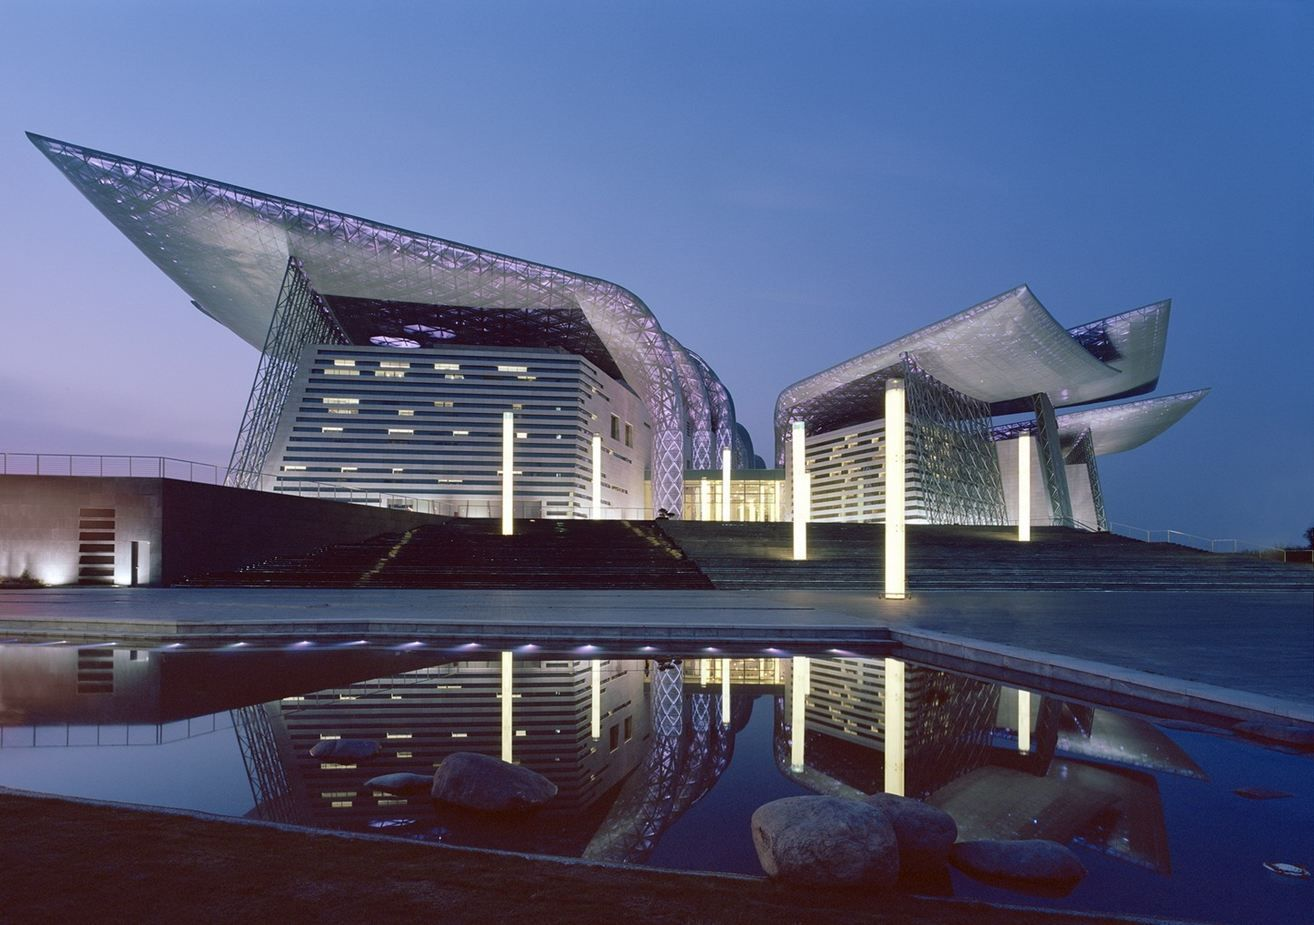 PES-Architects, Wuxi Grand Theatre, Wuxi, Cina, 2012